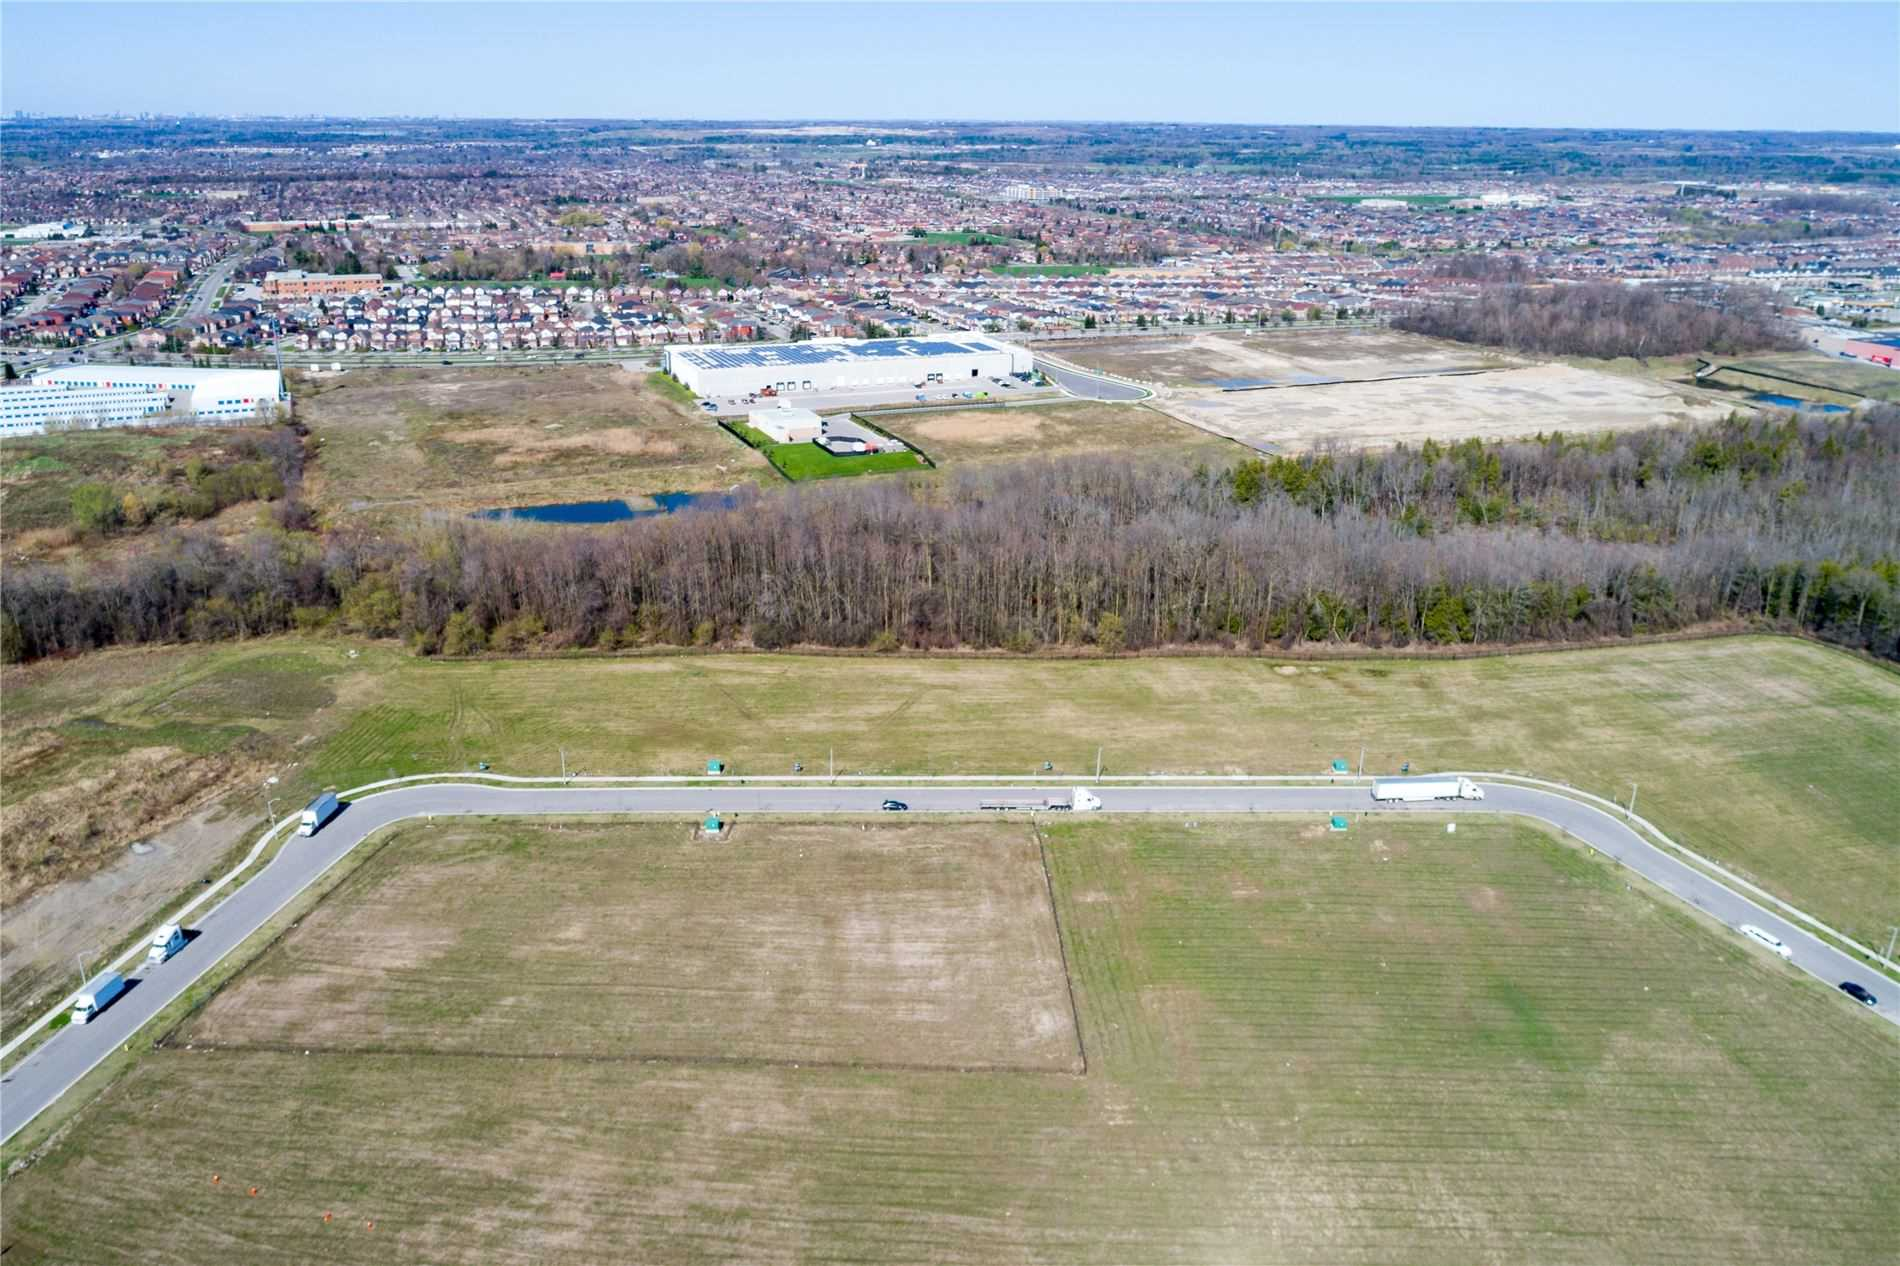 N/A Blowers Cres, Ajax, Ontario N/A, ,Land,For Sale,Blowers,E4790062